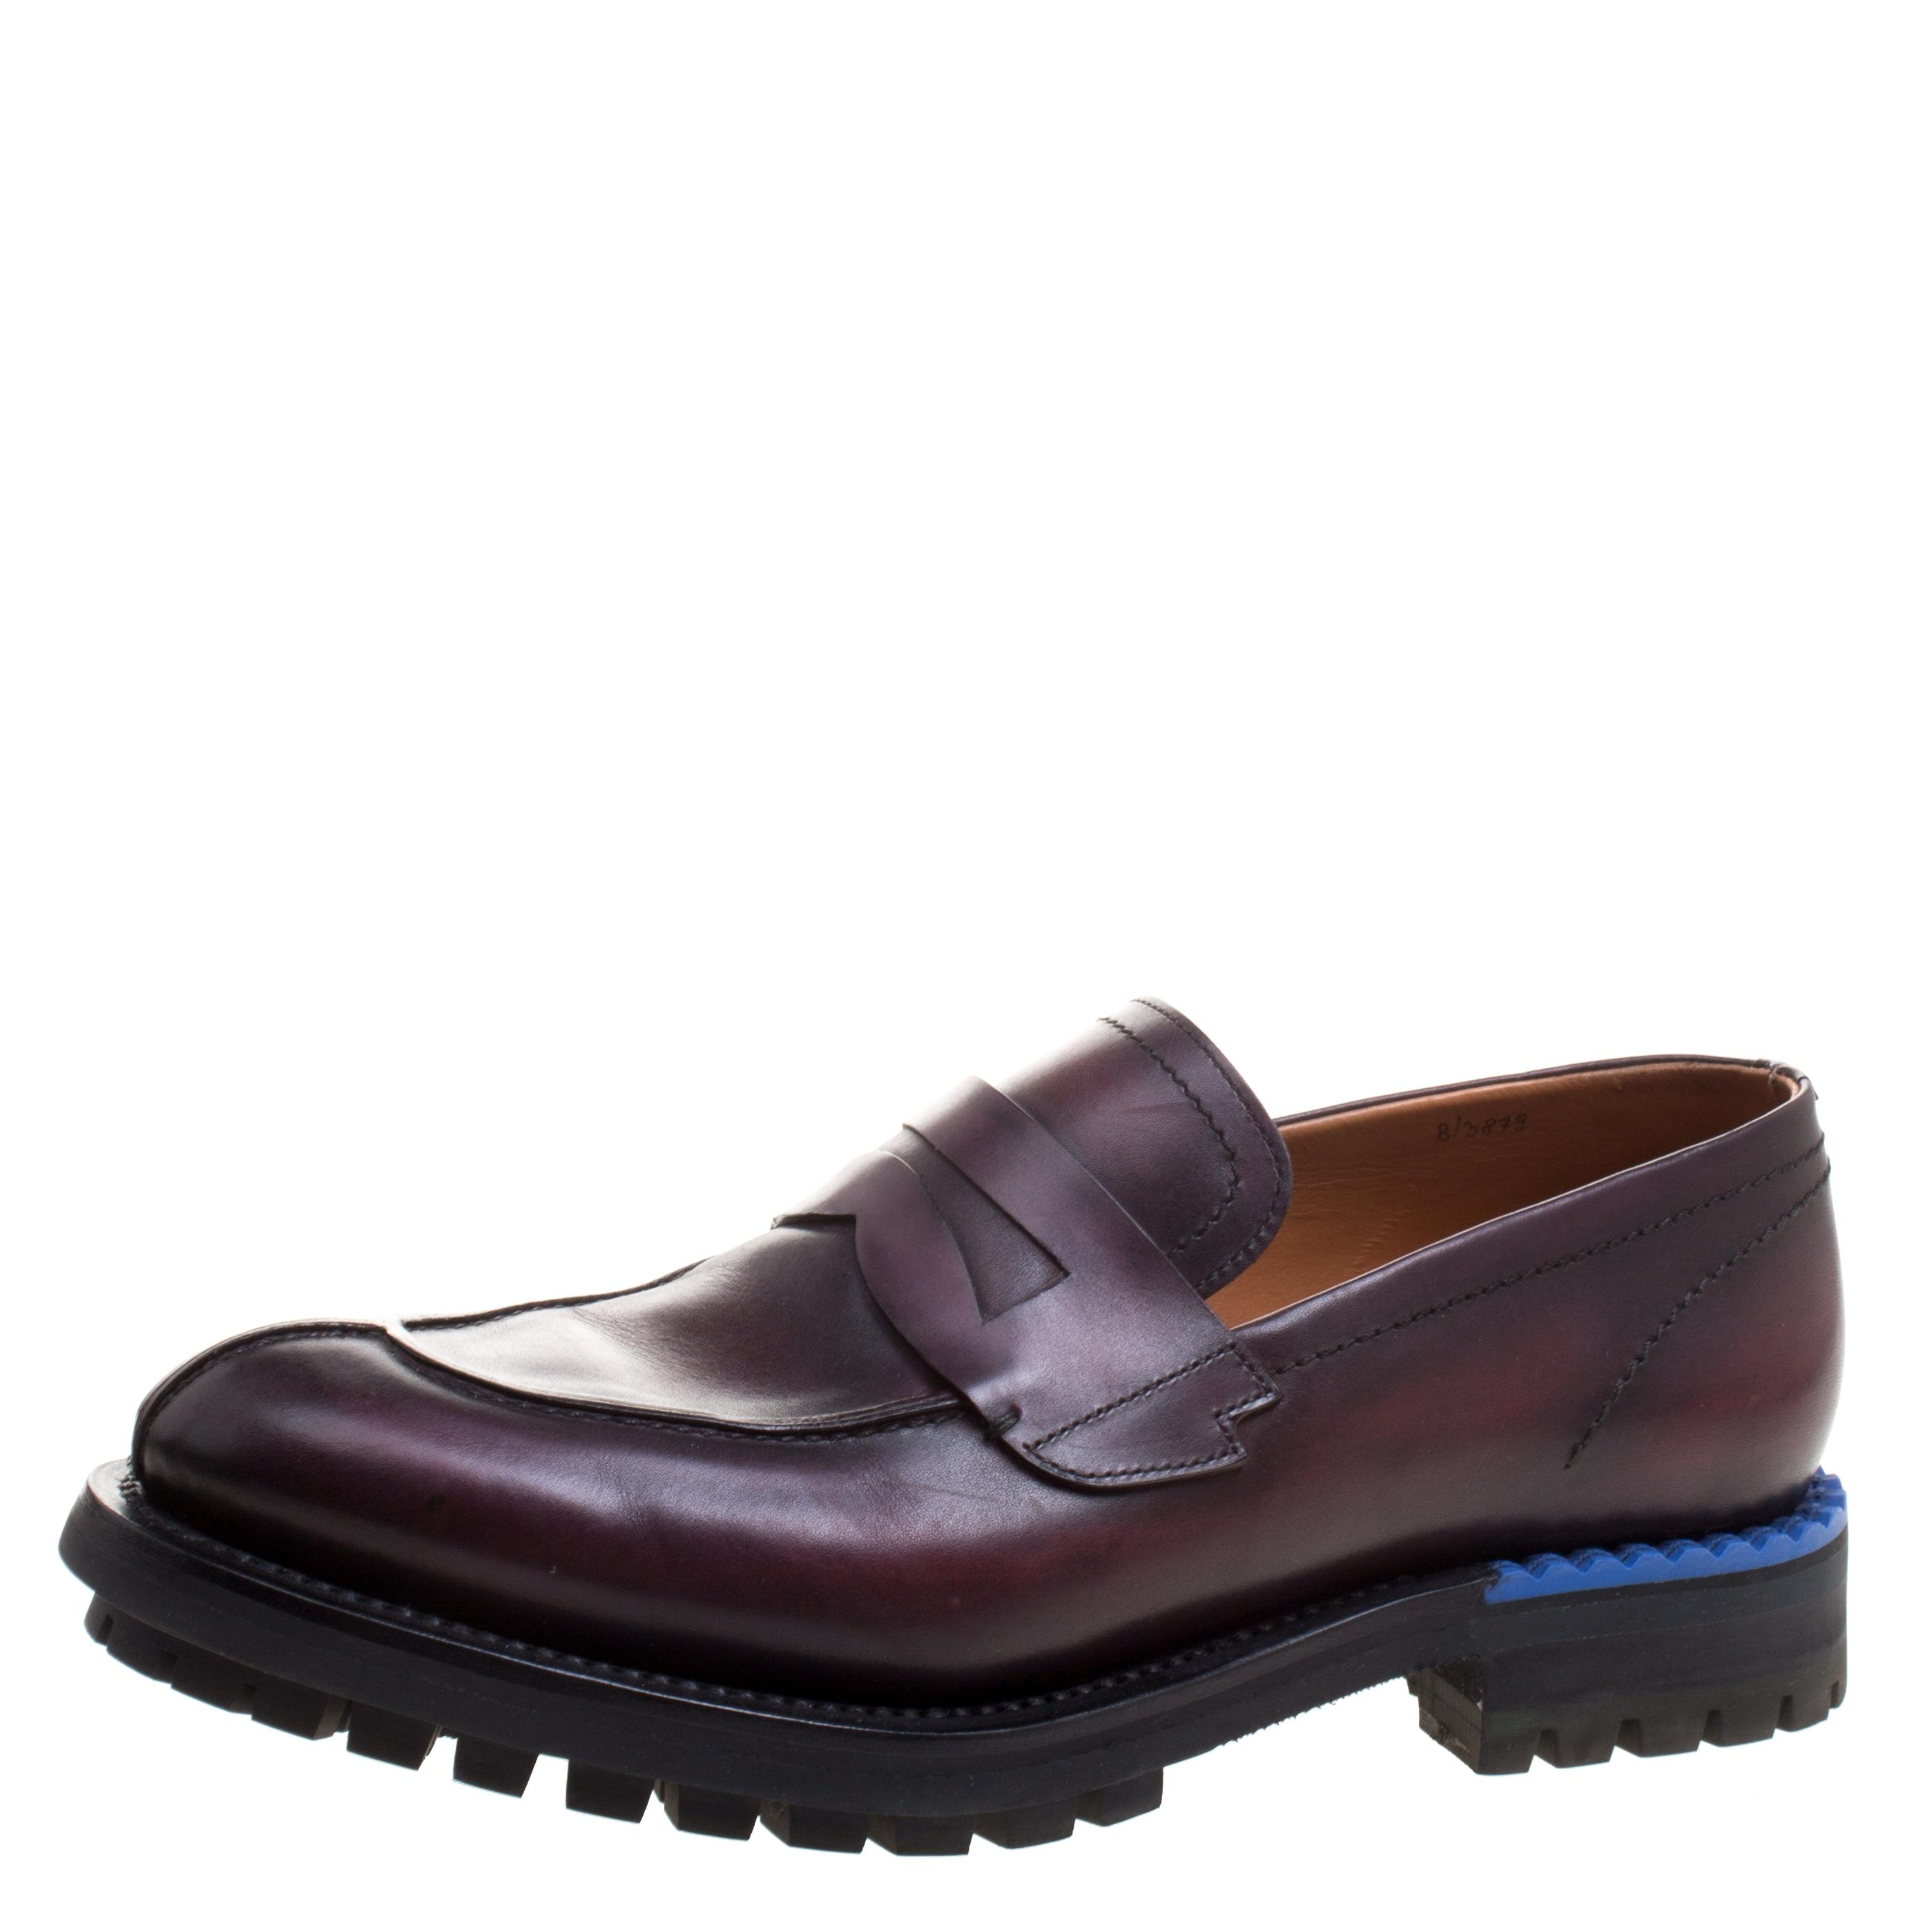 Burgundy Two Tone Leather Penny Loafers Formal Shoes Shoes